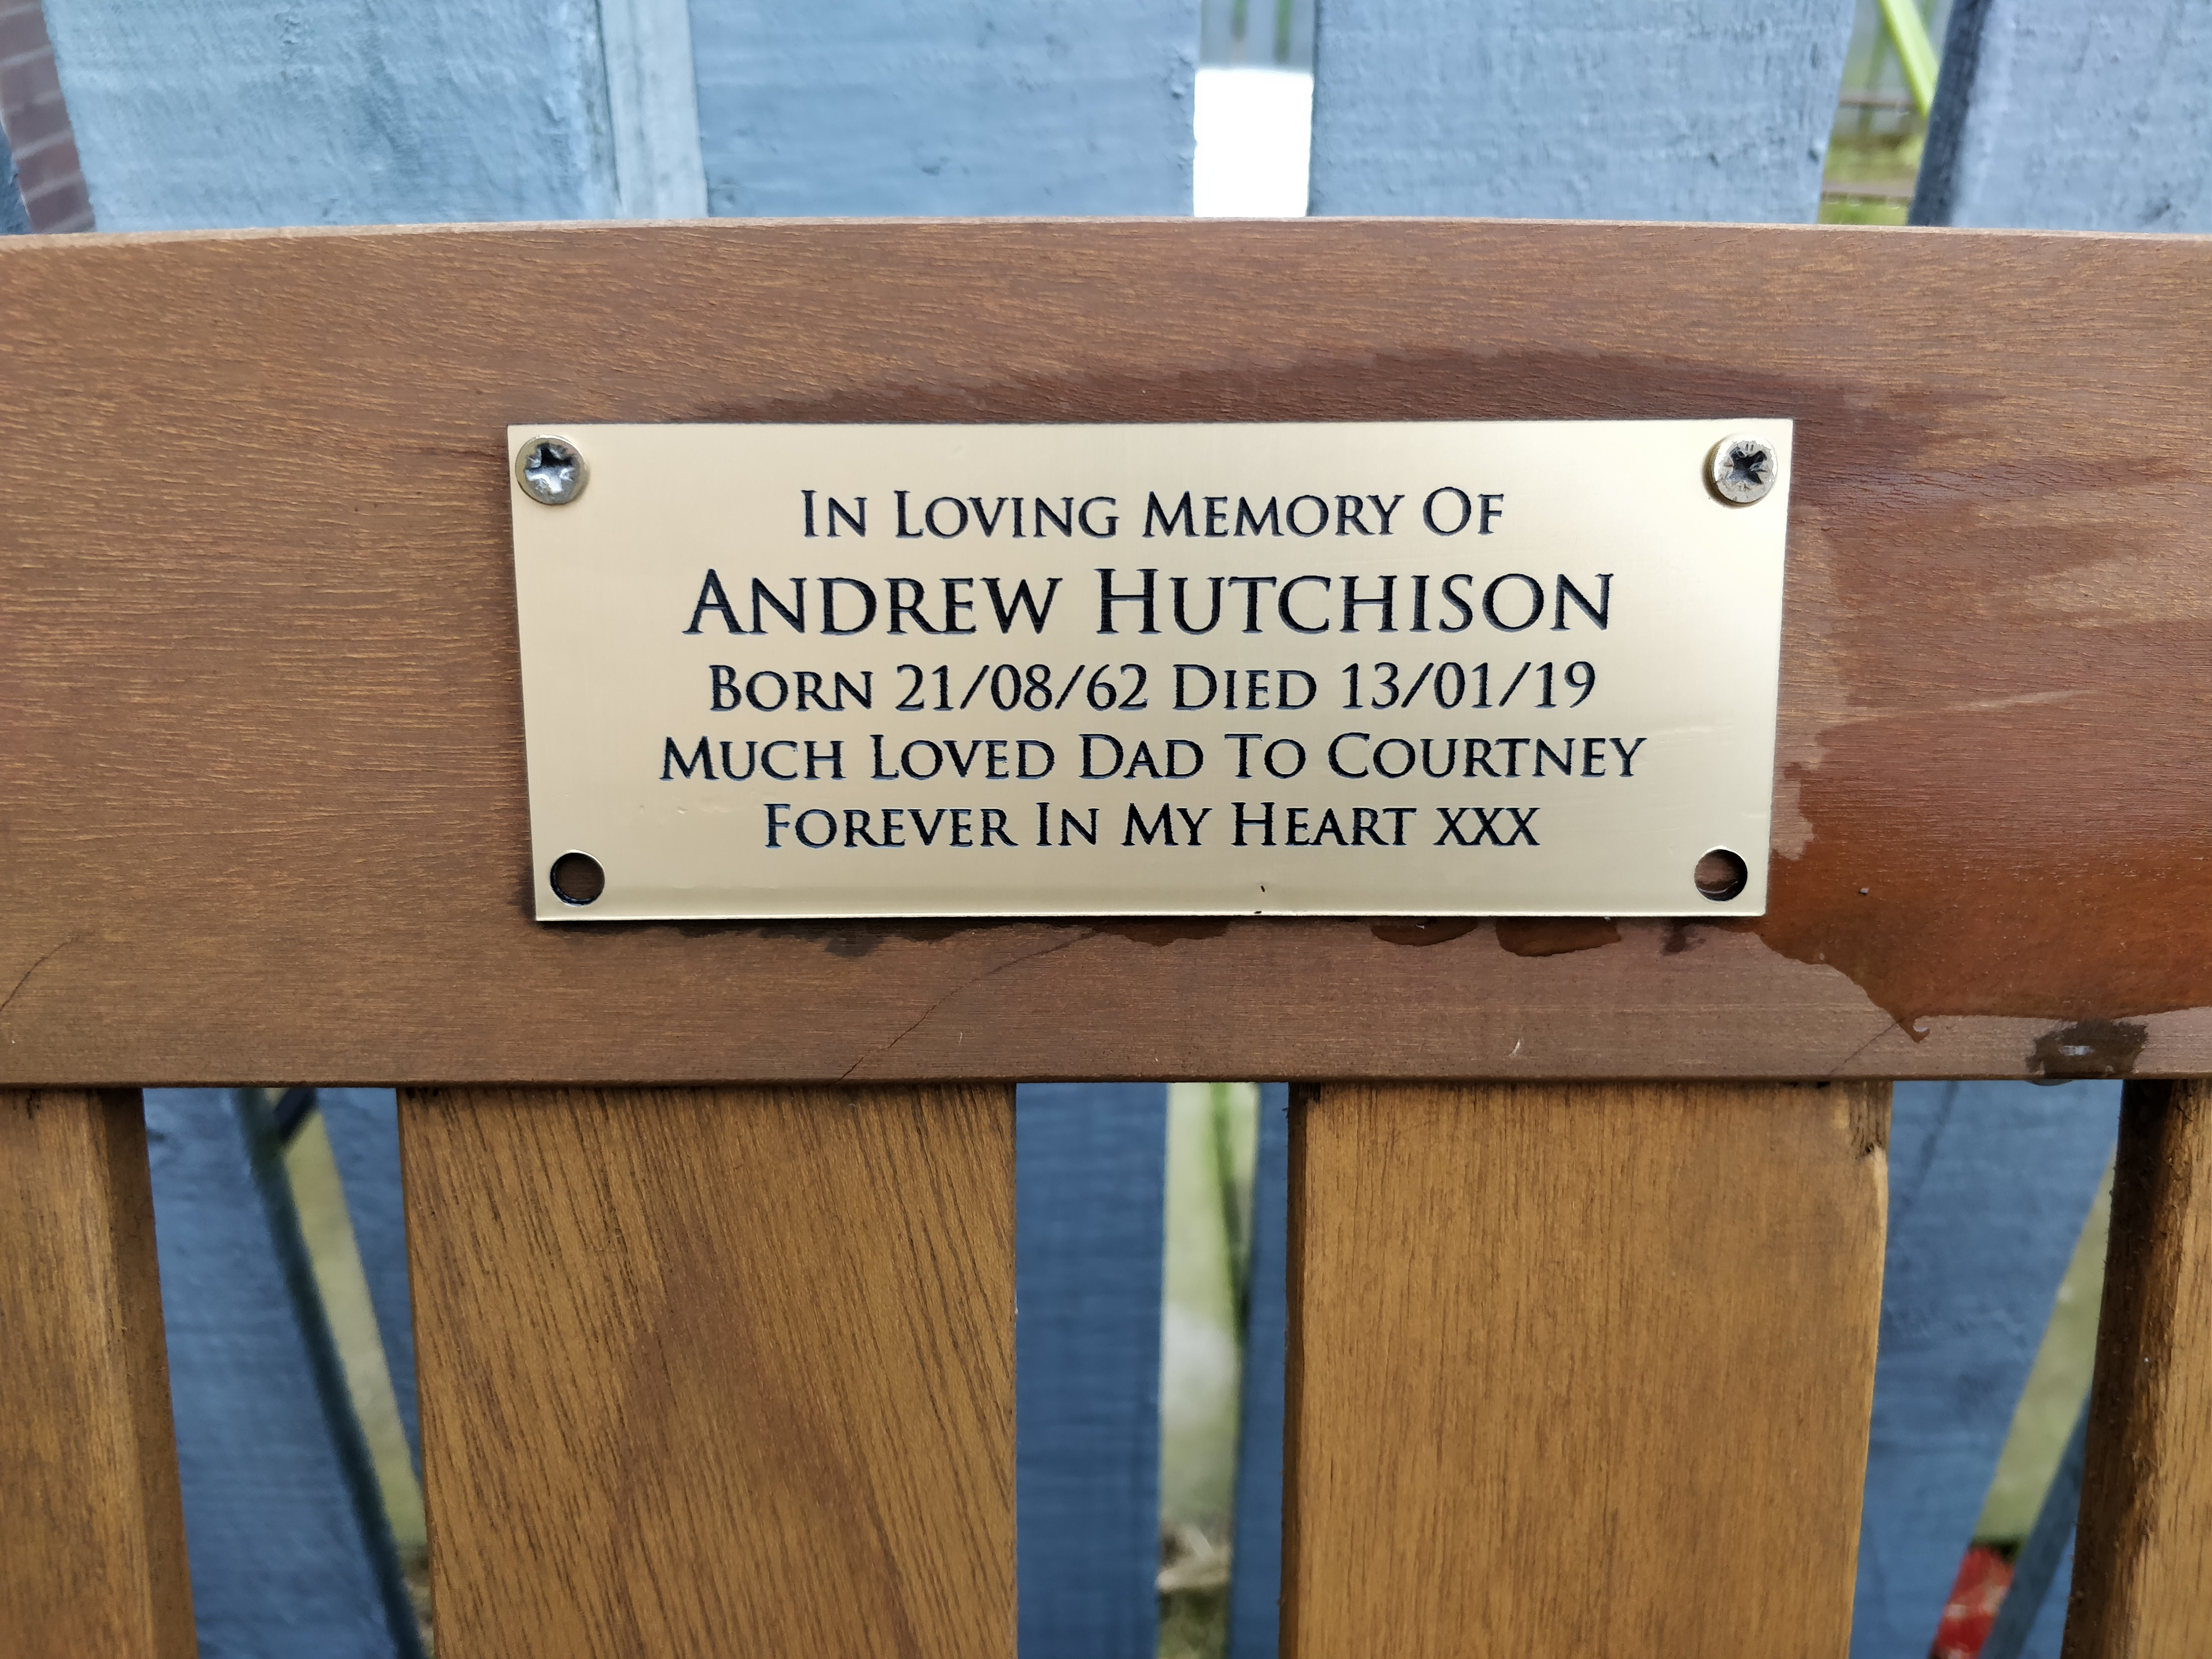 Loretto arranged a memorial bench with plaque during lockdown for a tenant's late dad